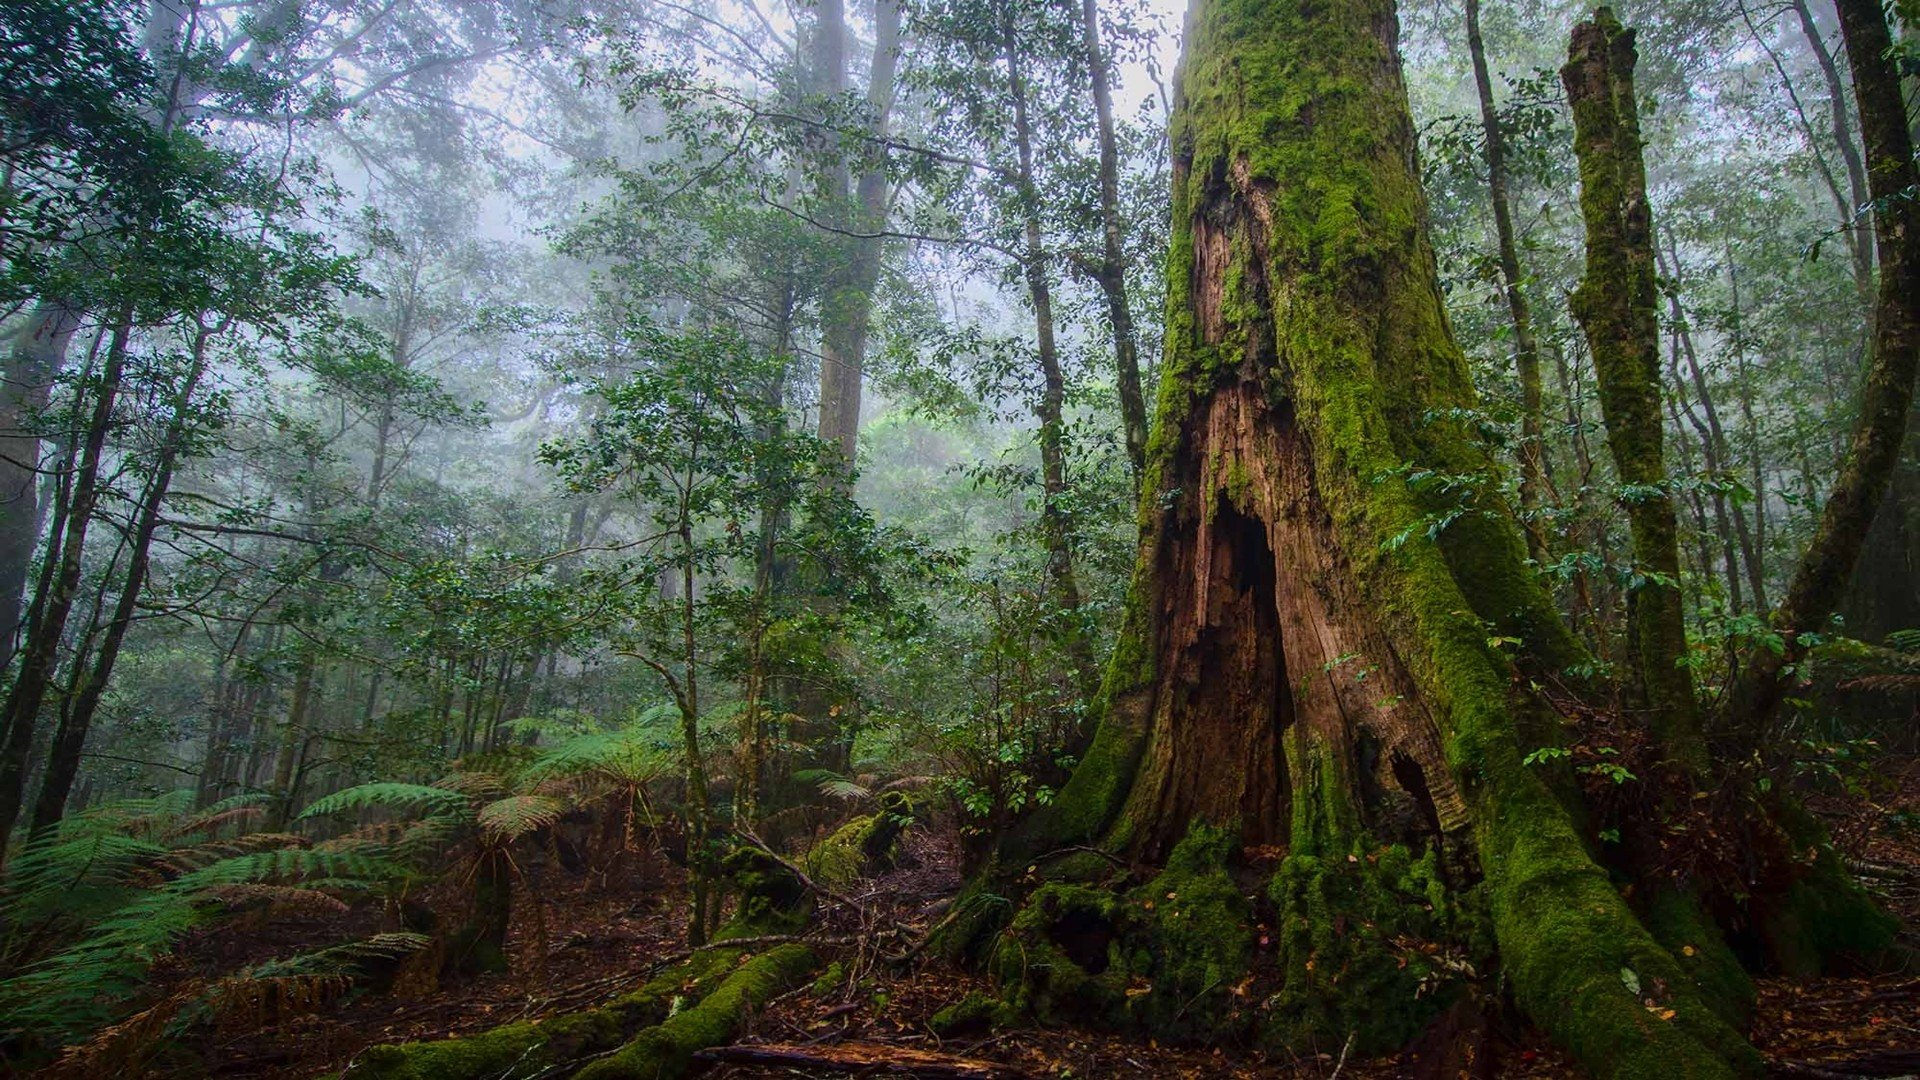 Tree Forest Nature Landscape Rock Hd Ultrahd 4k Wallpaper